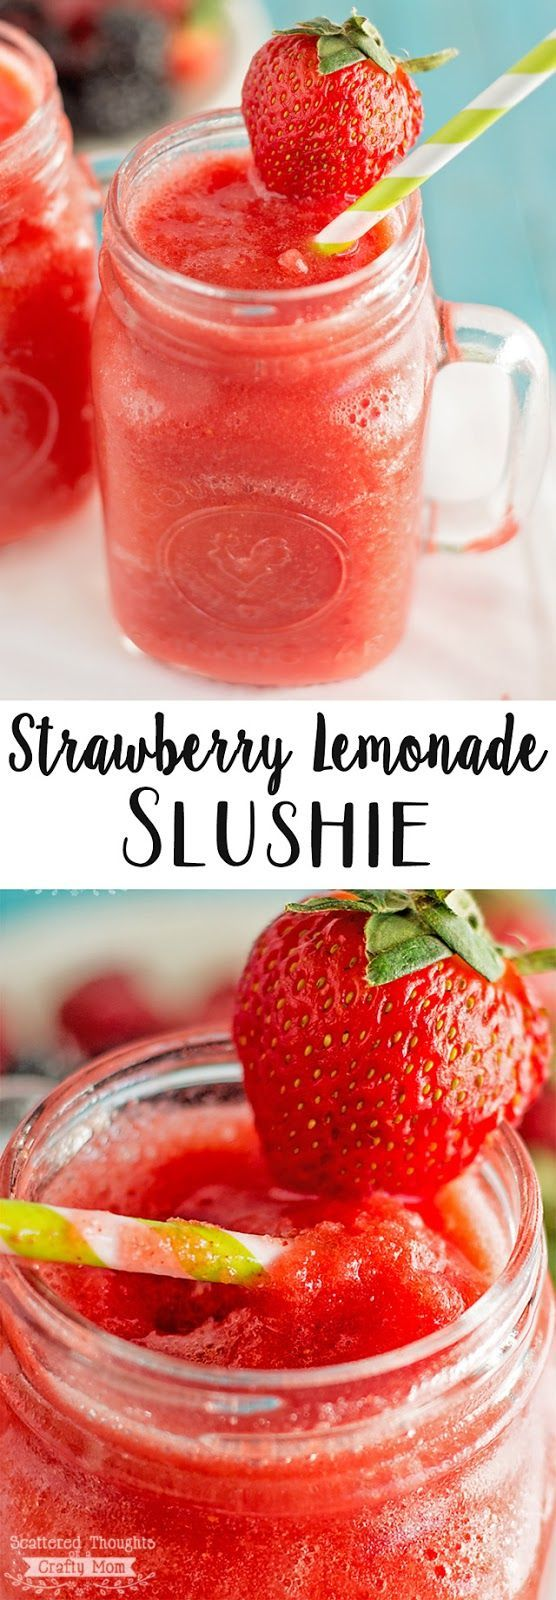 Strawberry Lemonade Slushie Recipe ~ This was awesome on a hot day! No added sugar needed.